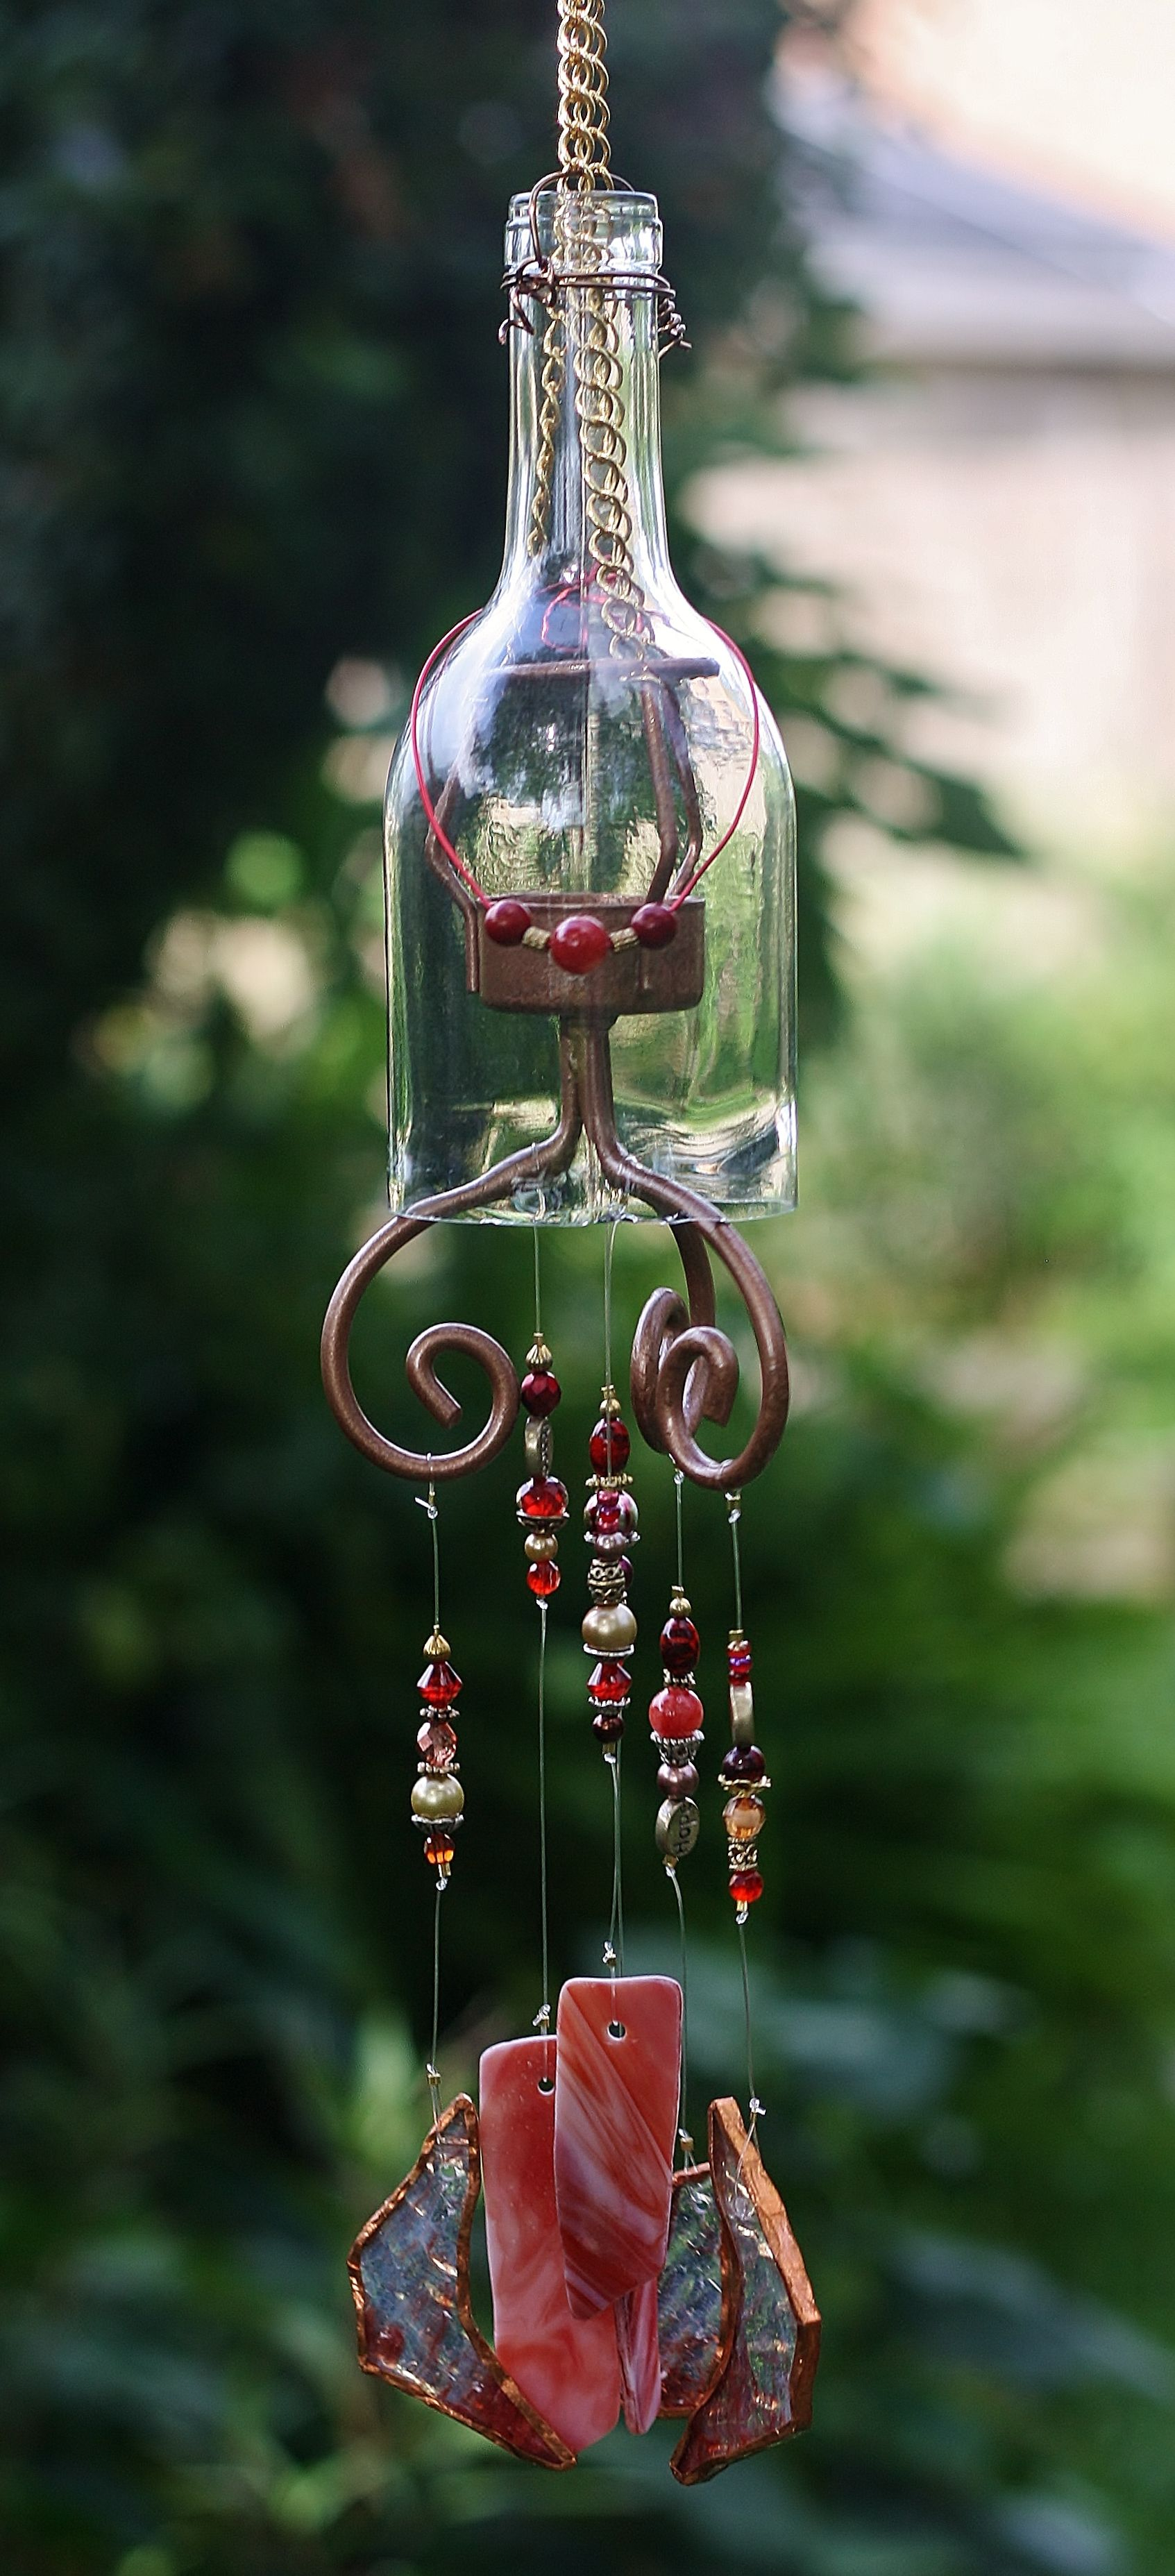 Razzle Dazzle One Of A Kind Stained Glass Wine Bottle Wind Chime Wind Chimes Wine Bottle Chimes Wine Bottle Wind Chimes